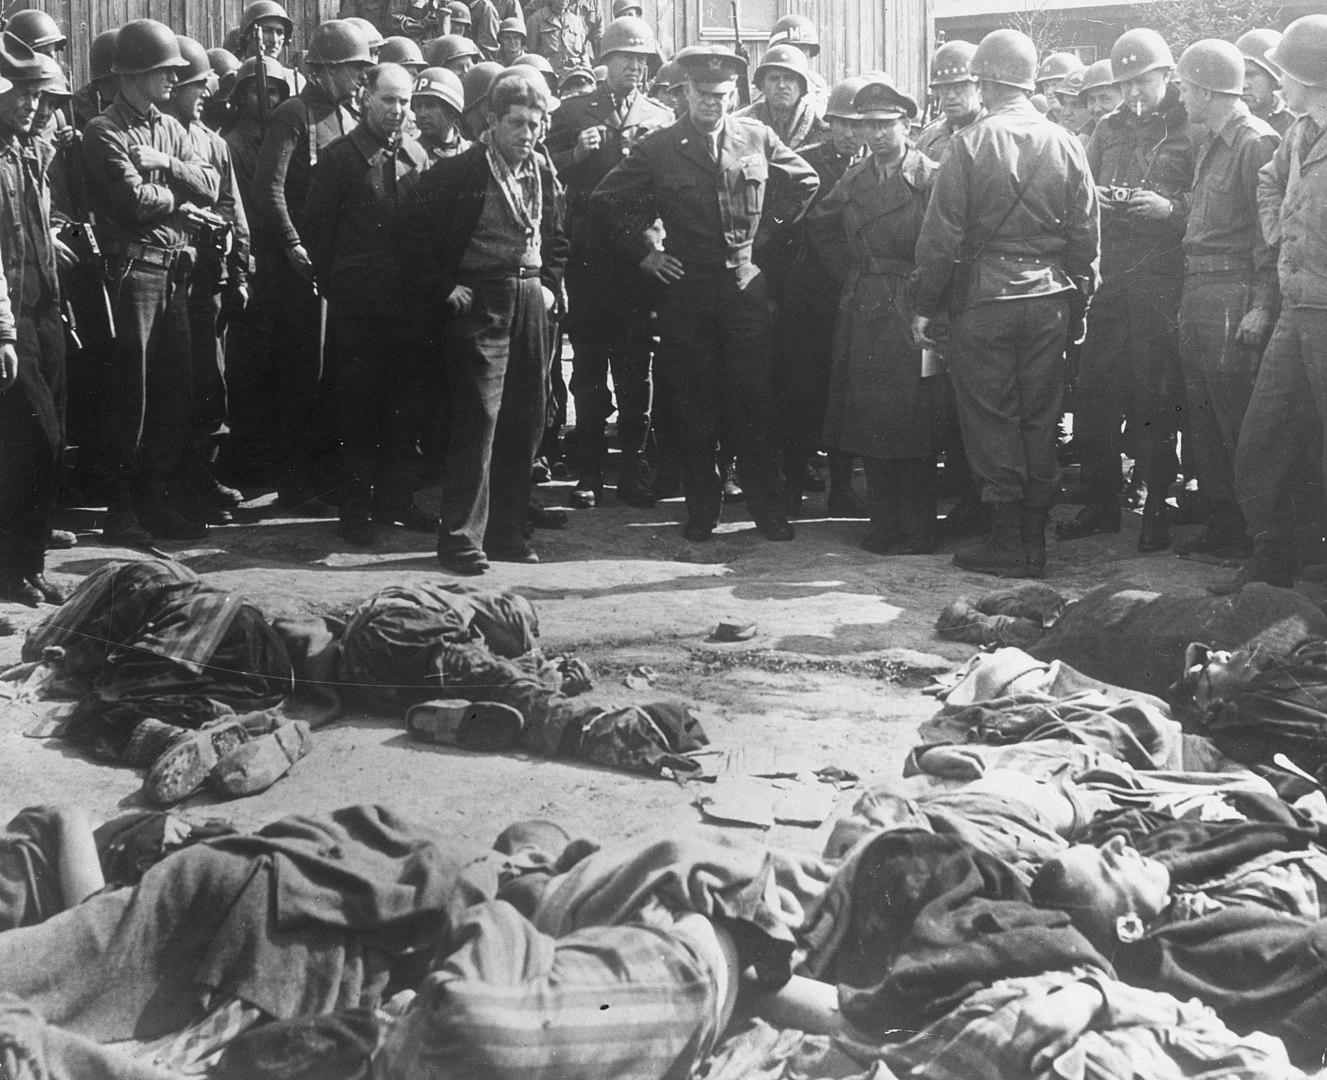 The U.S. Soldiers Who Liberated Nazi Concentration Camps Could Never Forget What They Saw